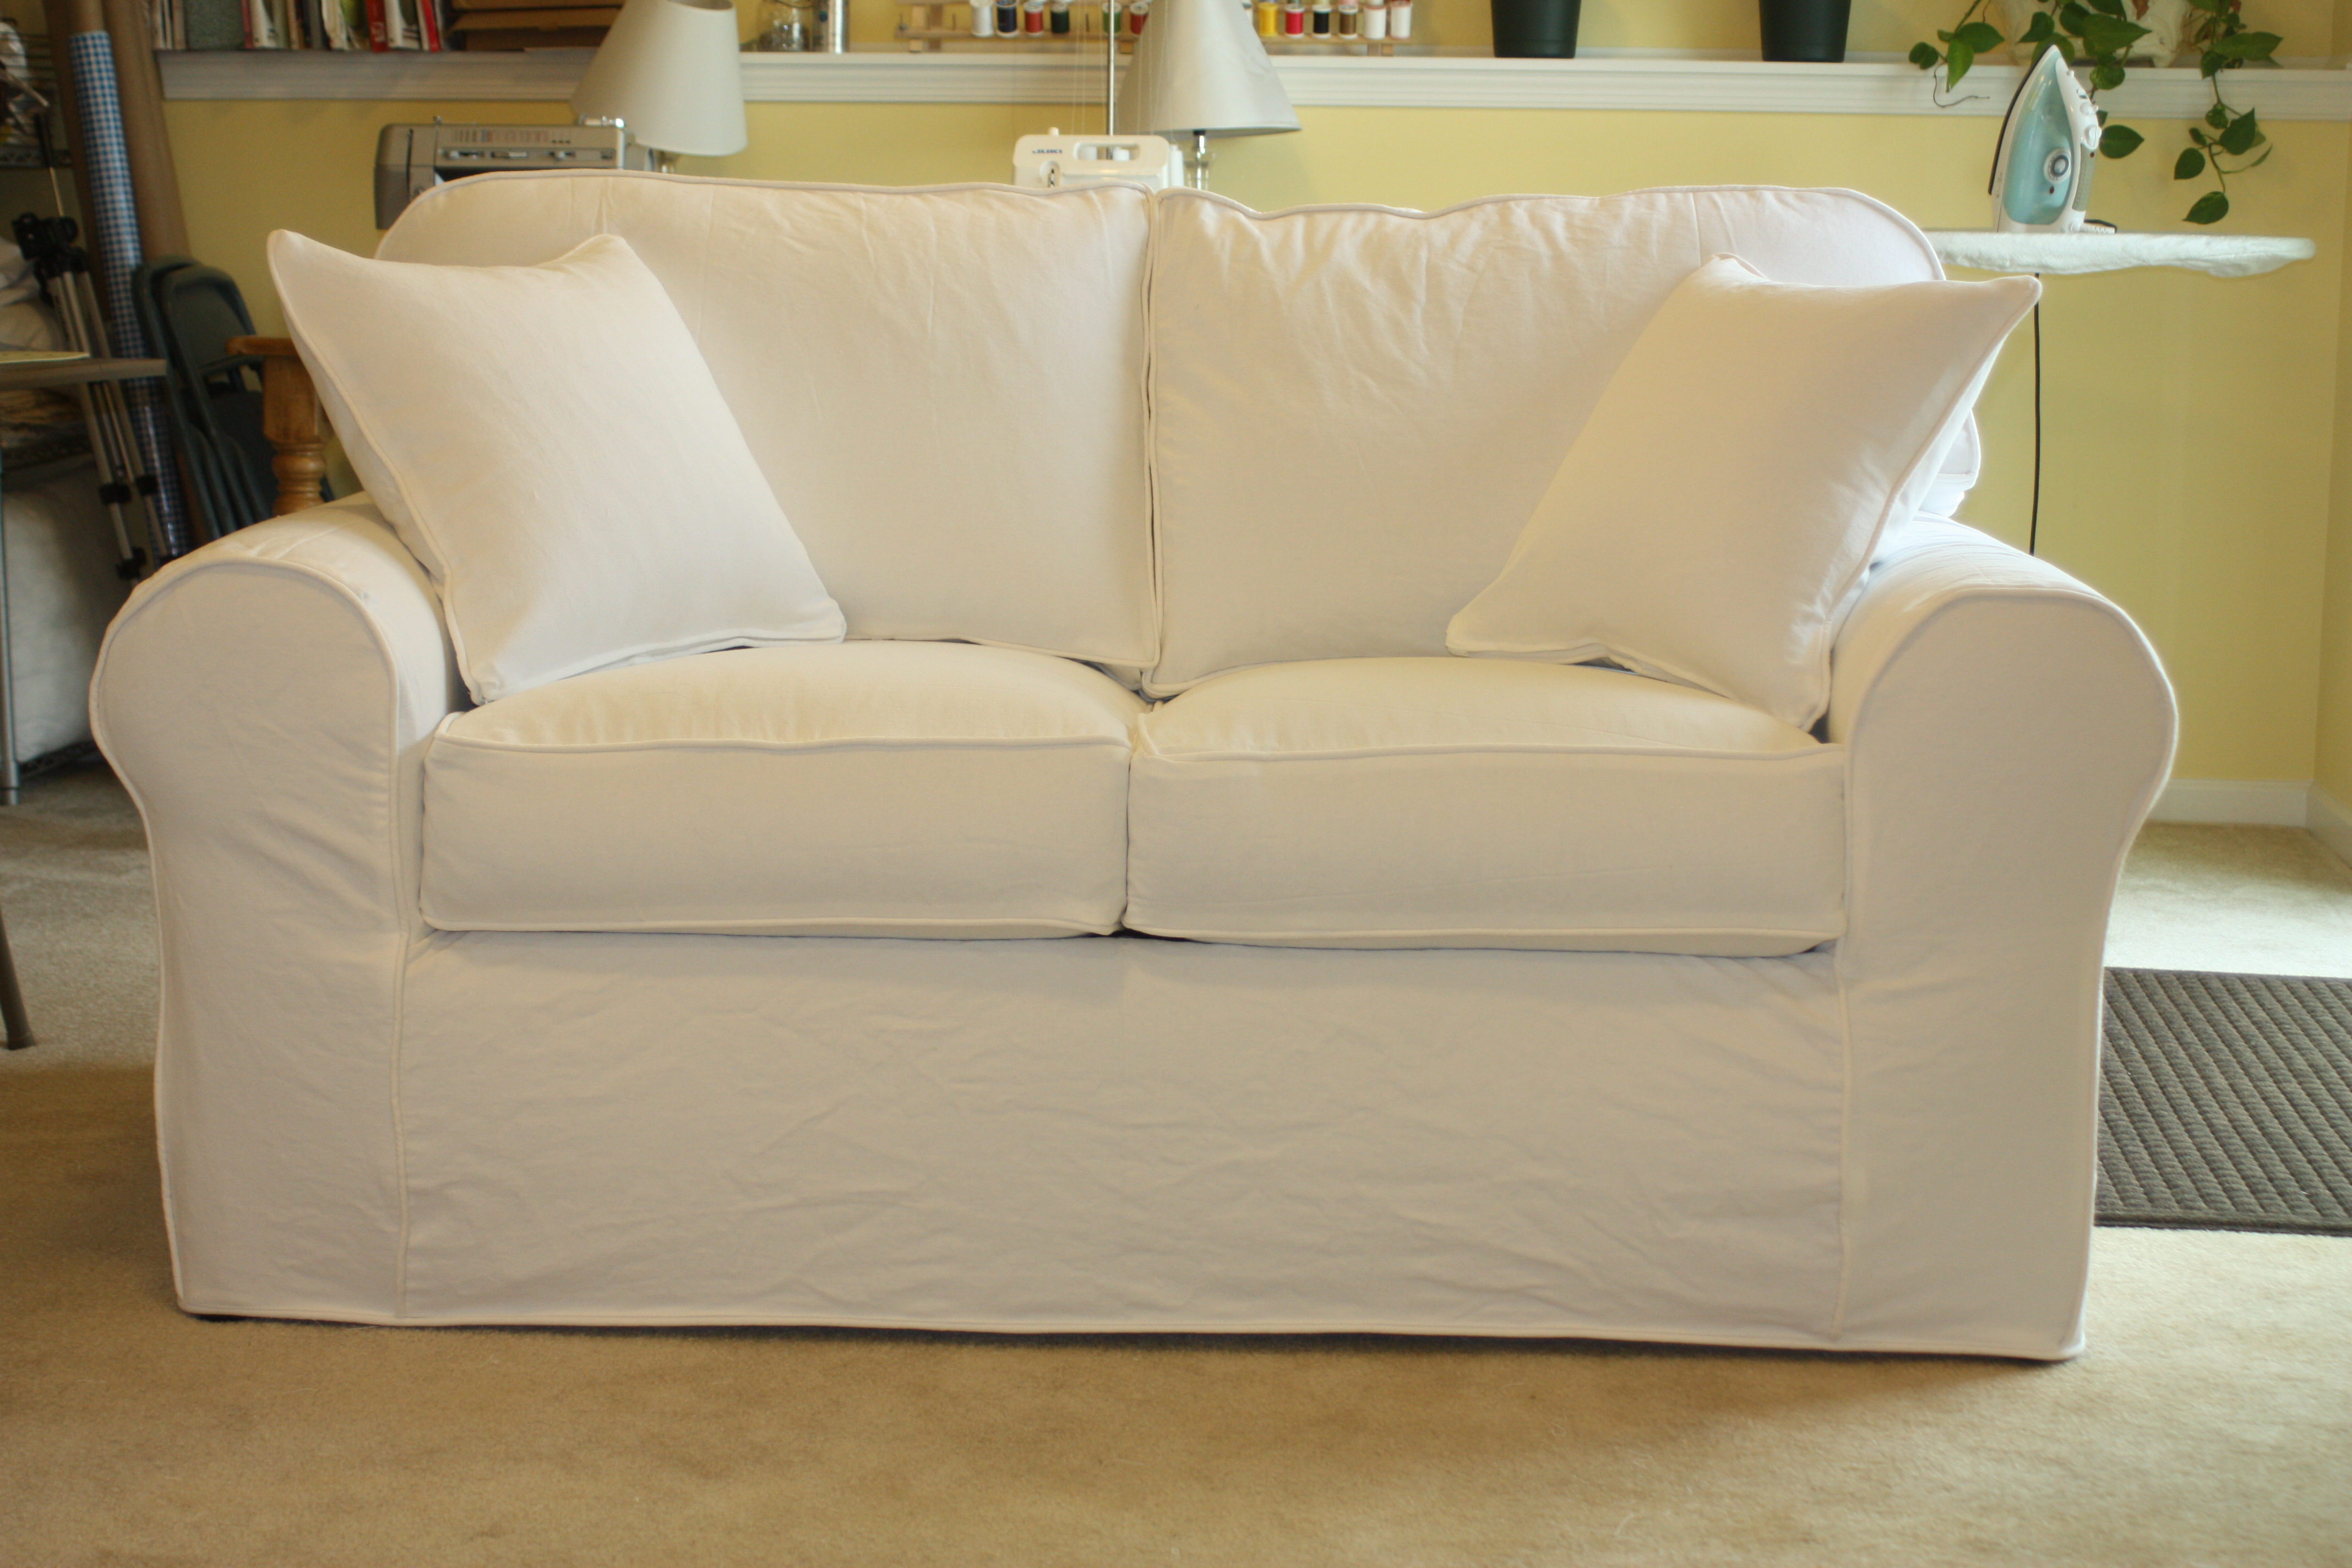 White denim sofa loveseat twill slipcover studio Loveseat slipcover